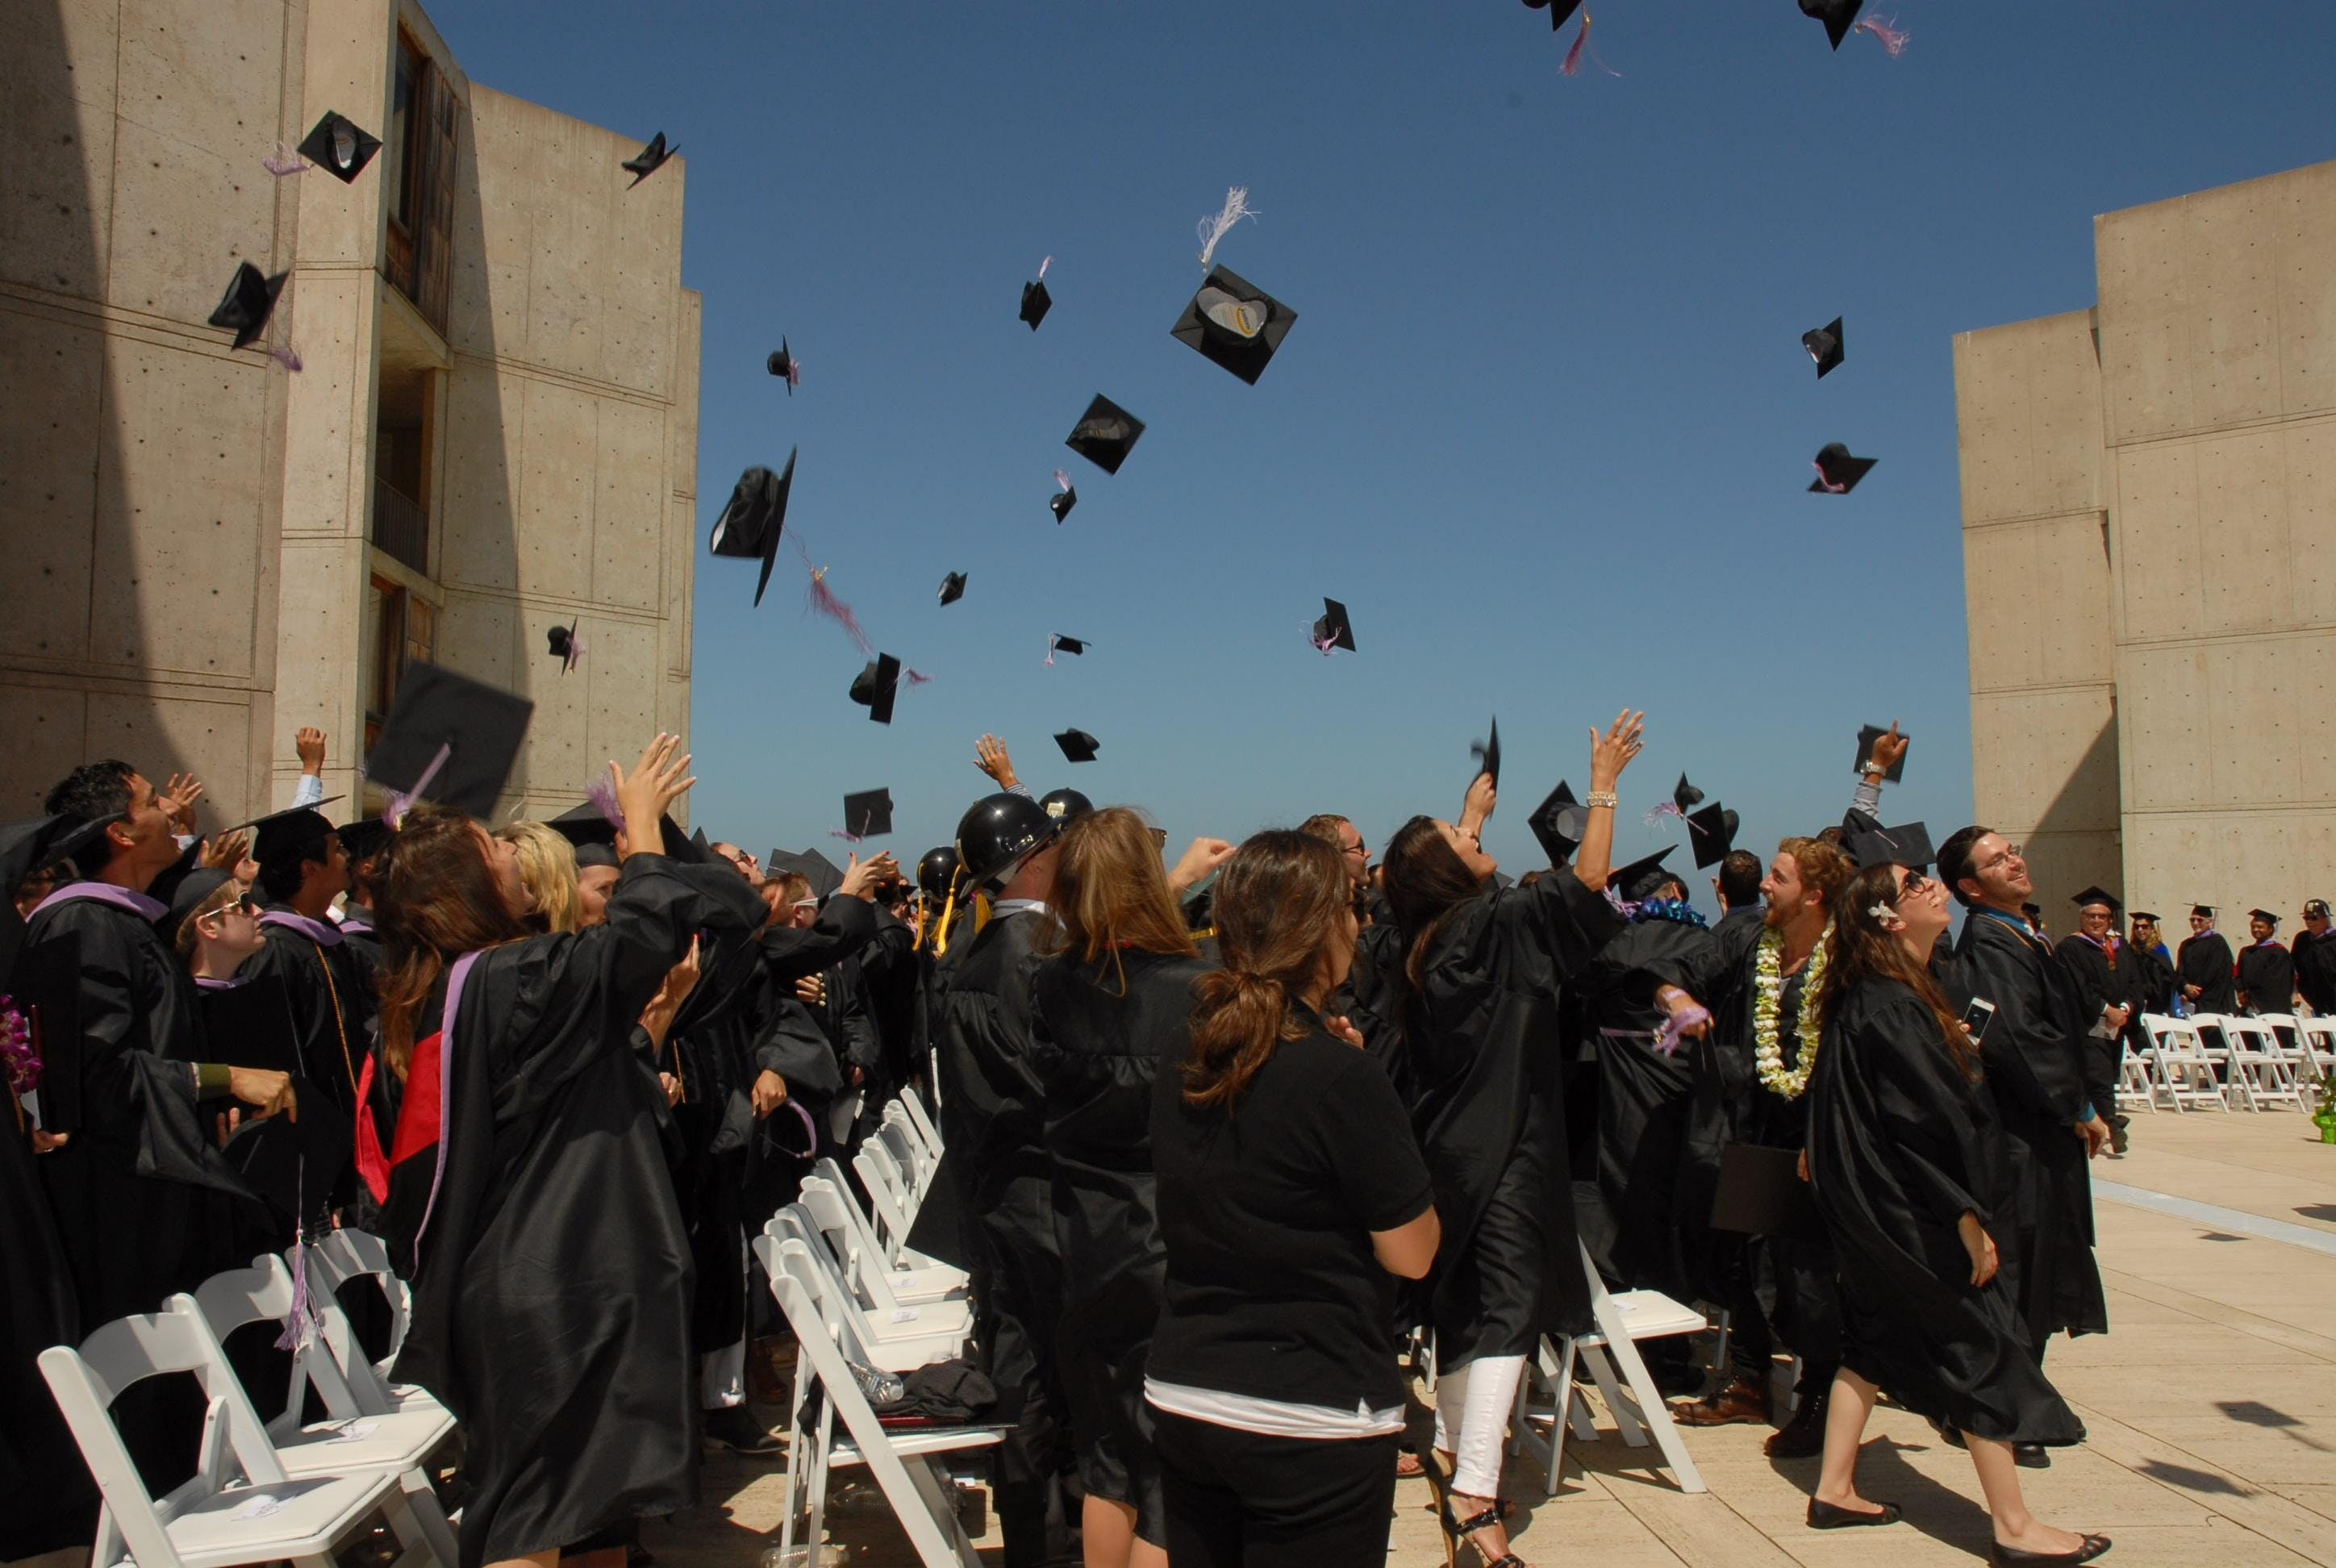 Newschool Of Architecture And Design Honors Graduating Class Of 2013